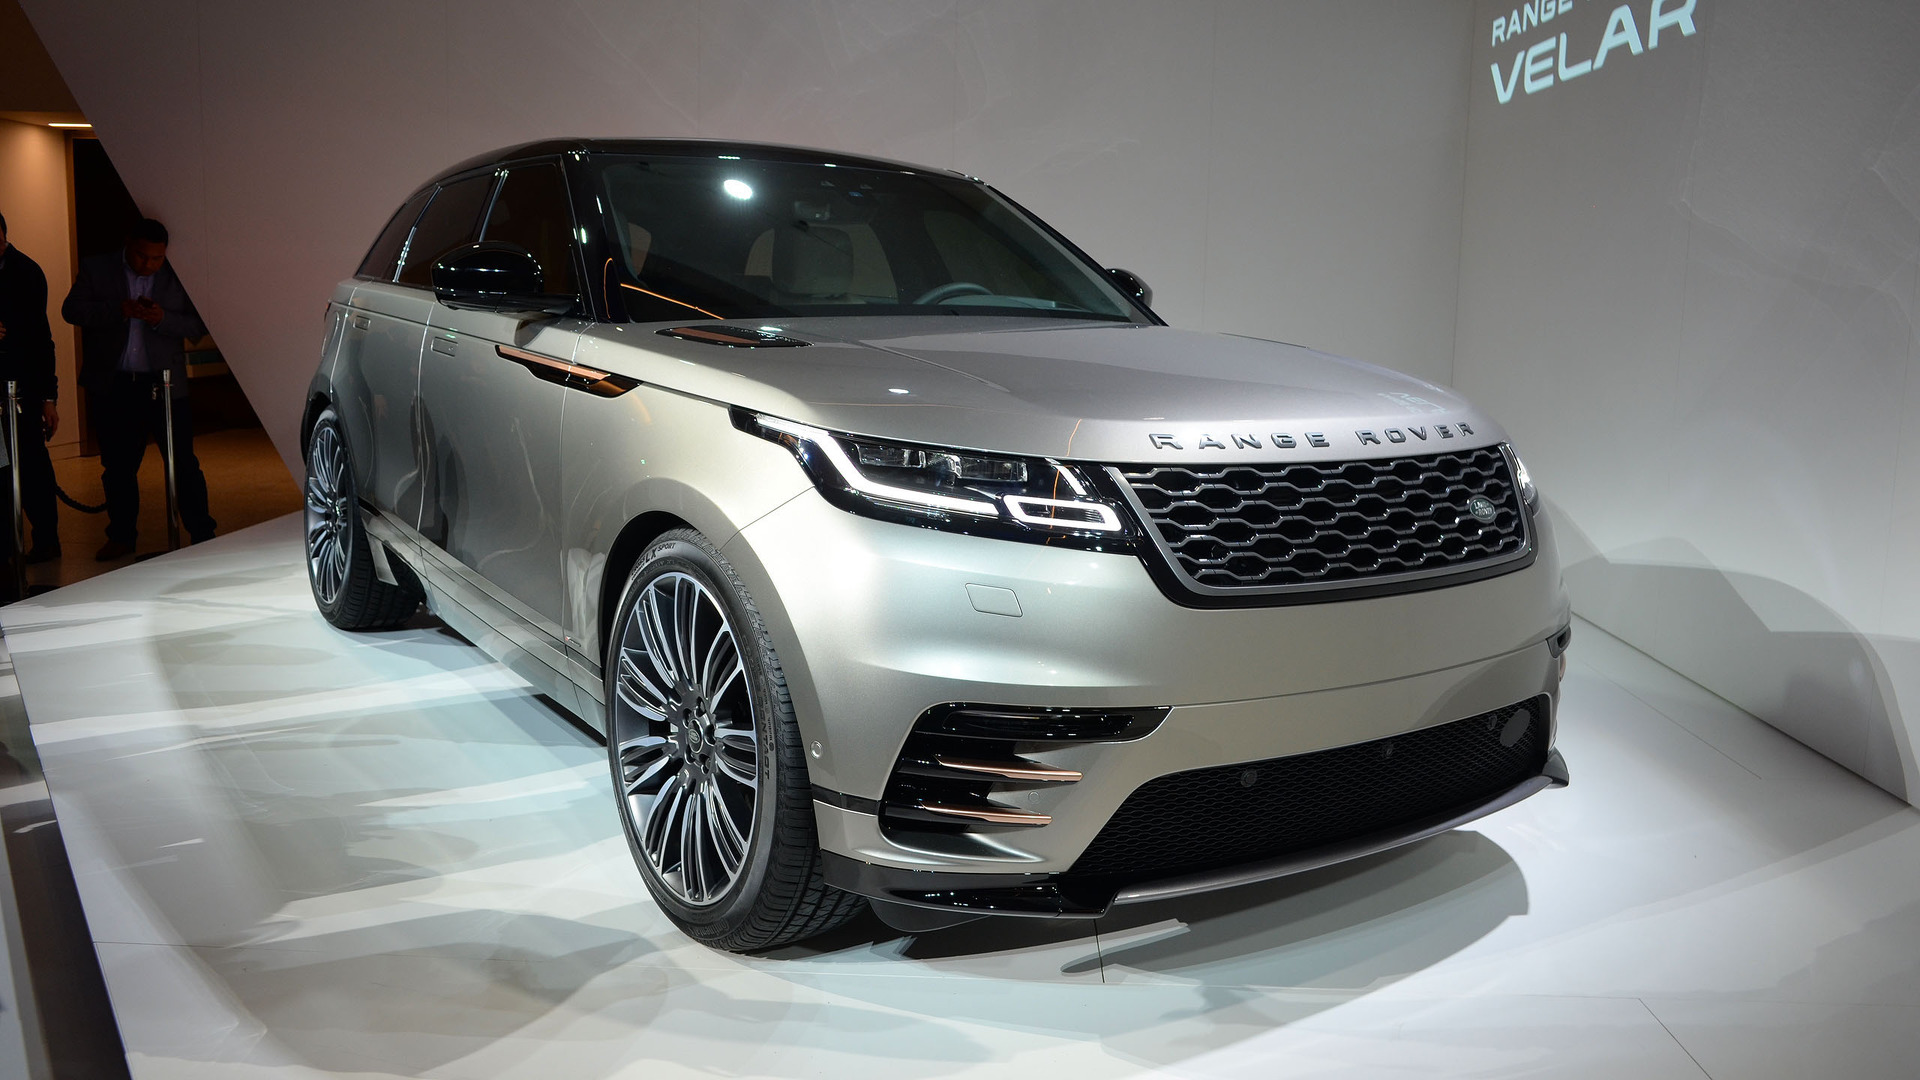 Land Rover Range Rover Velar Coupe Suv Arrives This Summer For 50 895